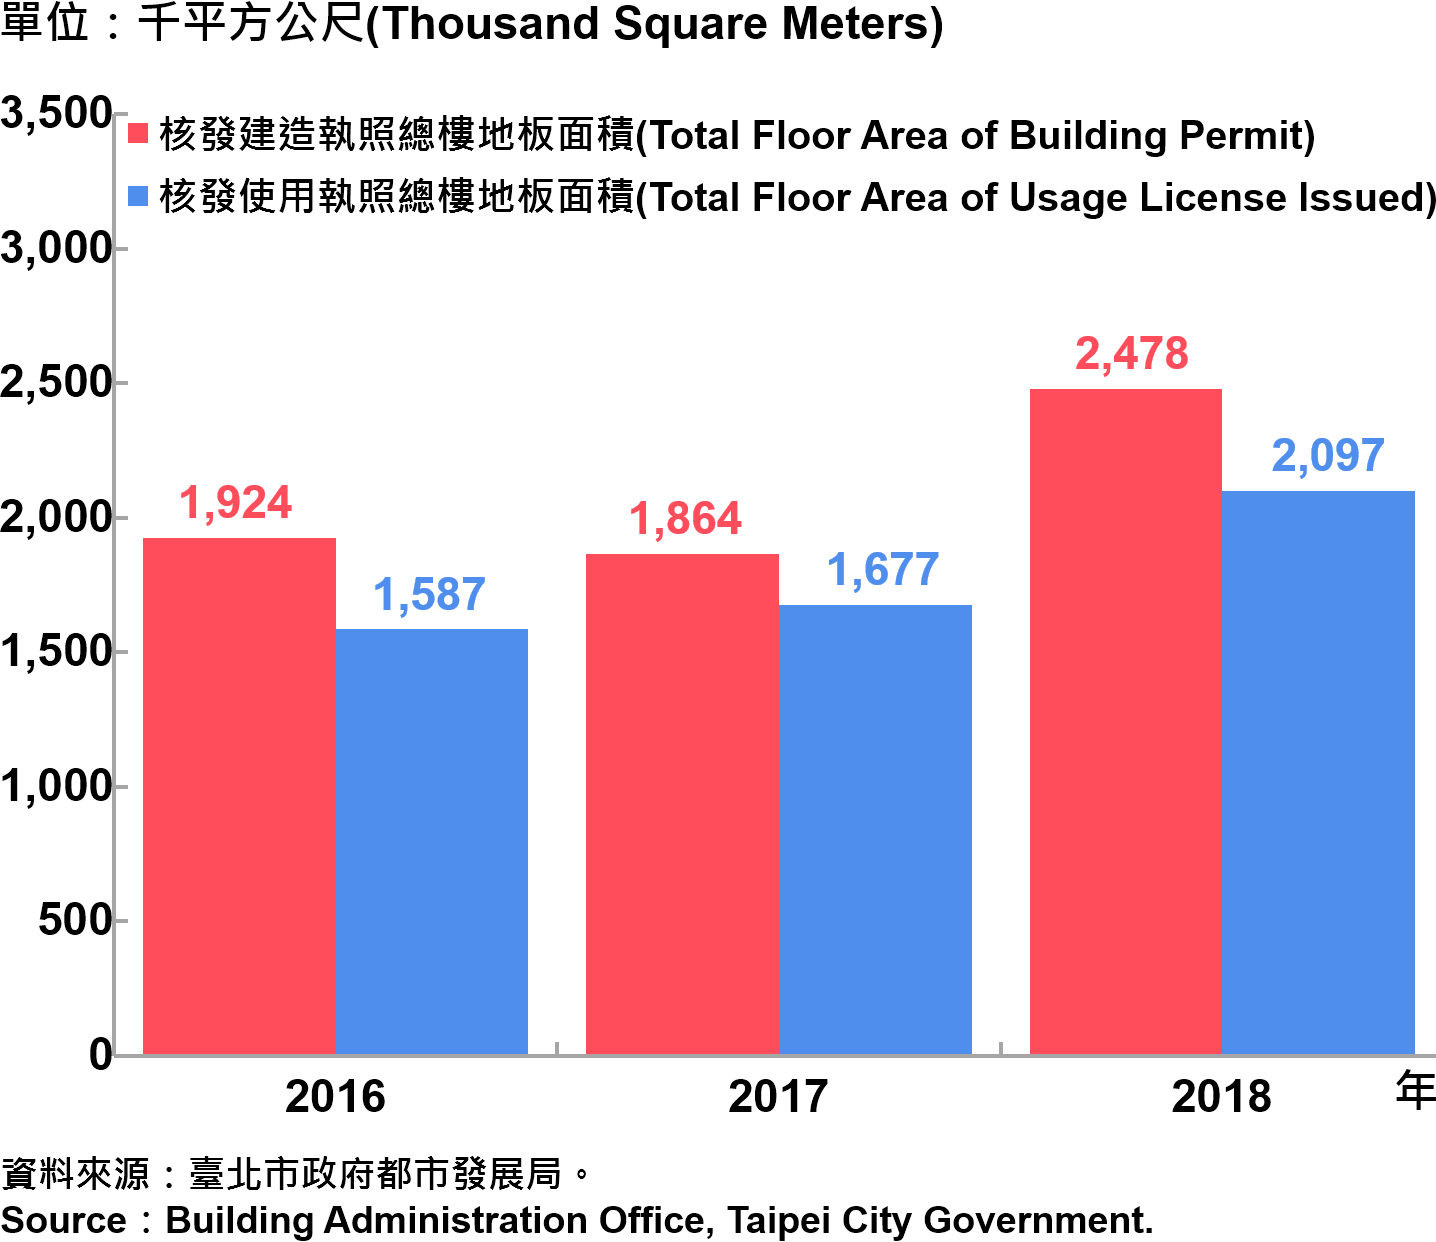 臺北市核發建築物執照與使用執照總樓地板面積—2018 Building with Newly Construction and Using Construction Permits Issued in Taipei City—2018